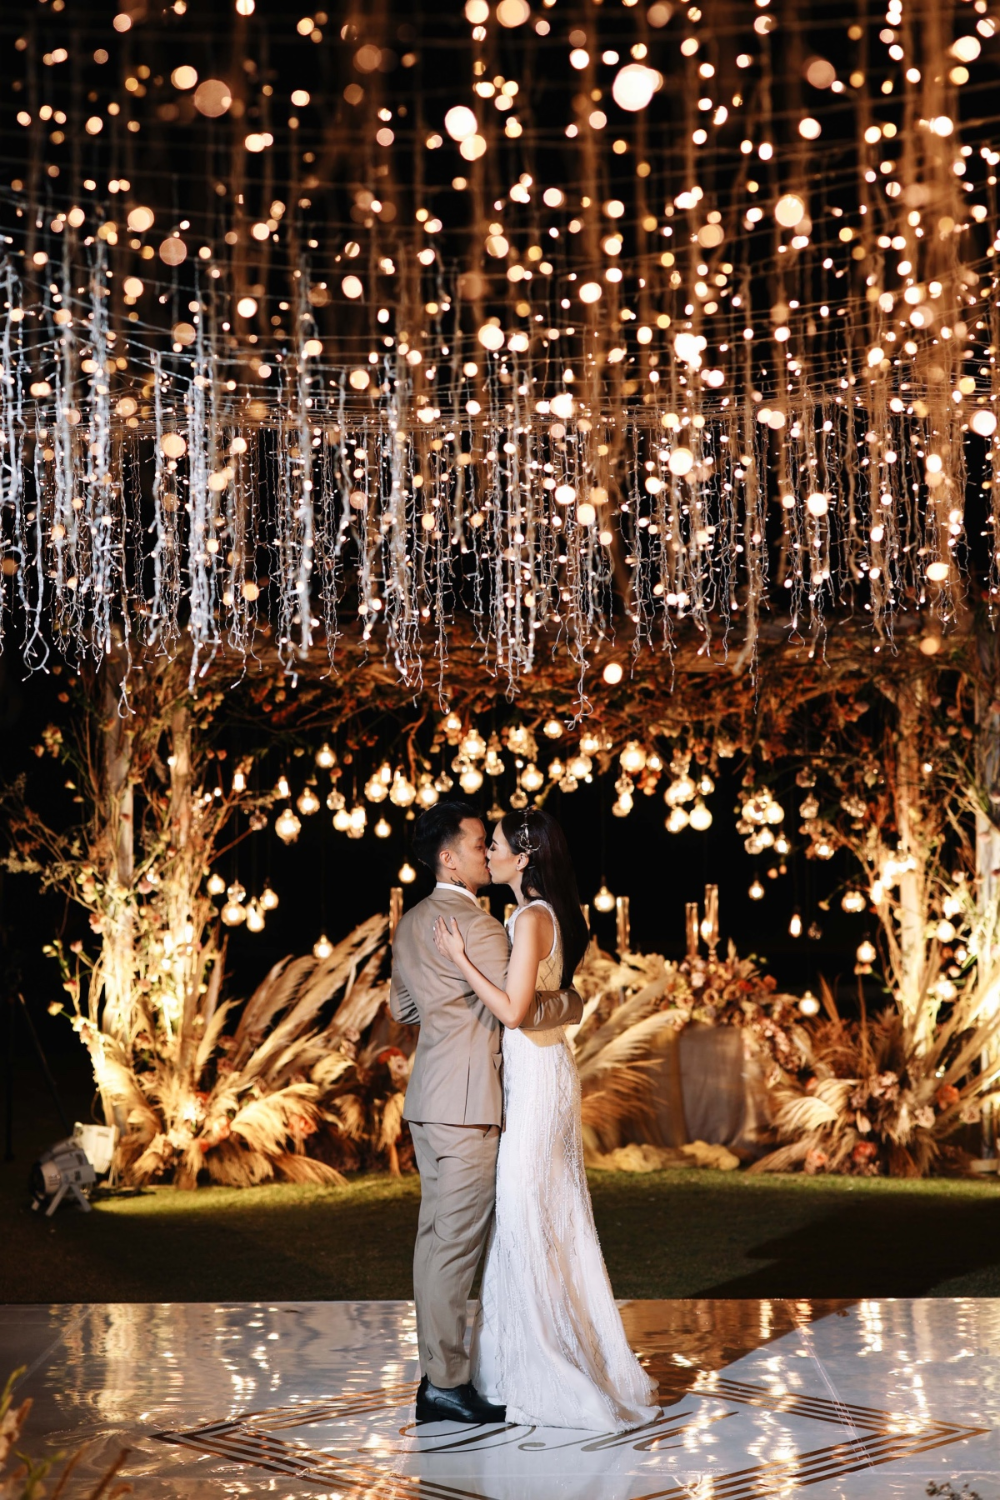 A Wedding In Bali With A Major Wow Factor In 2020 Bali Wedding Wedding Lights Enchanted Garden Wedding